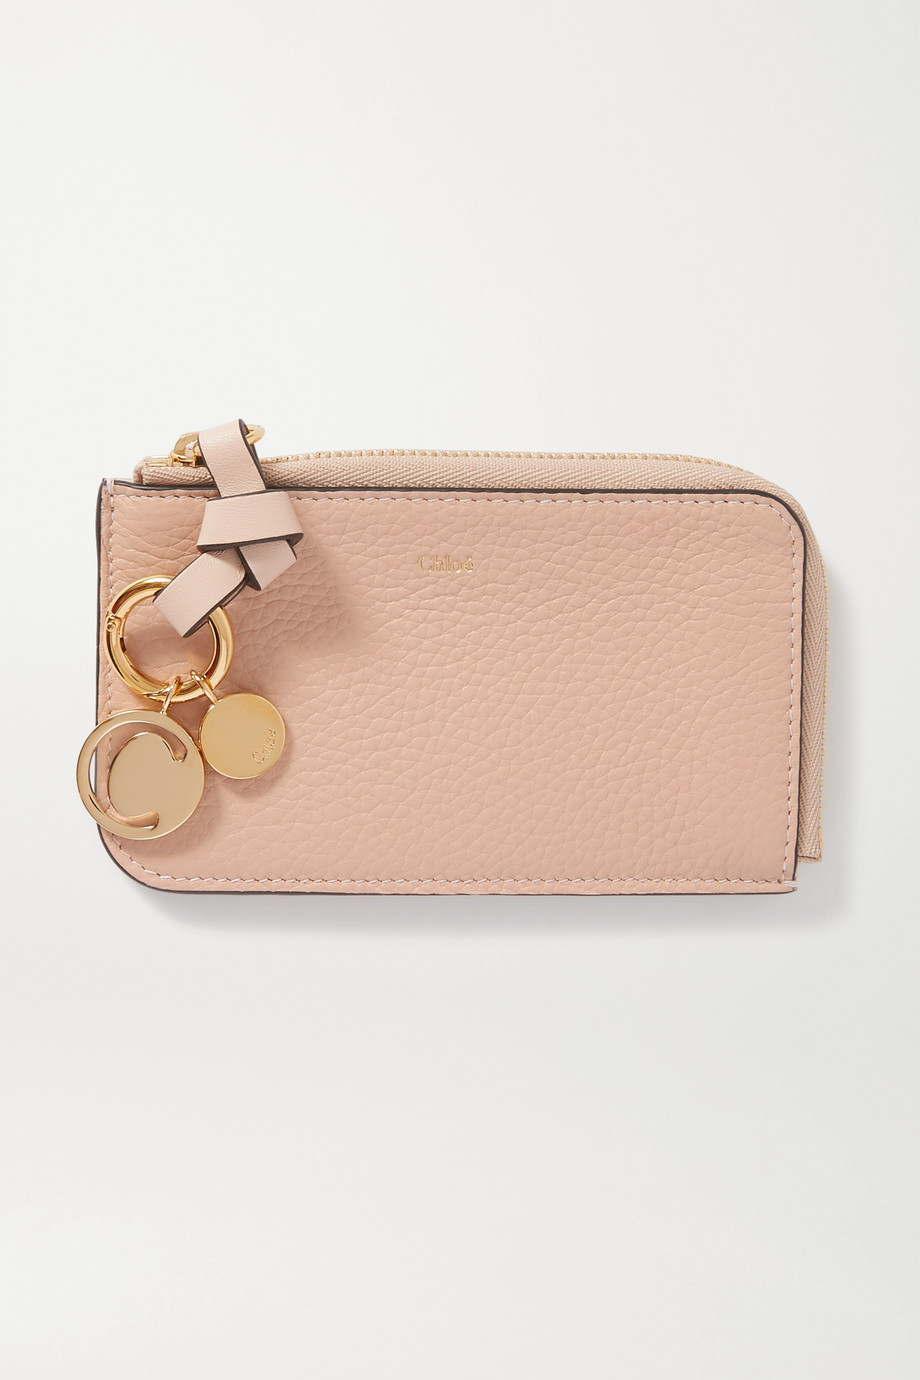 Chloé Alphabet textured-leather wallet